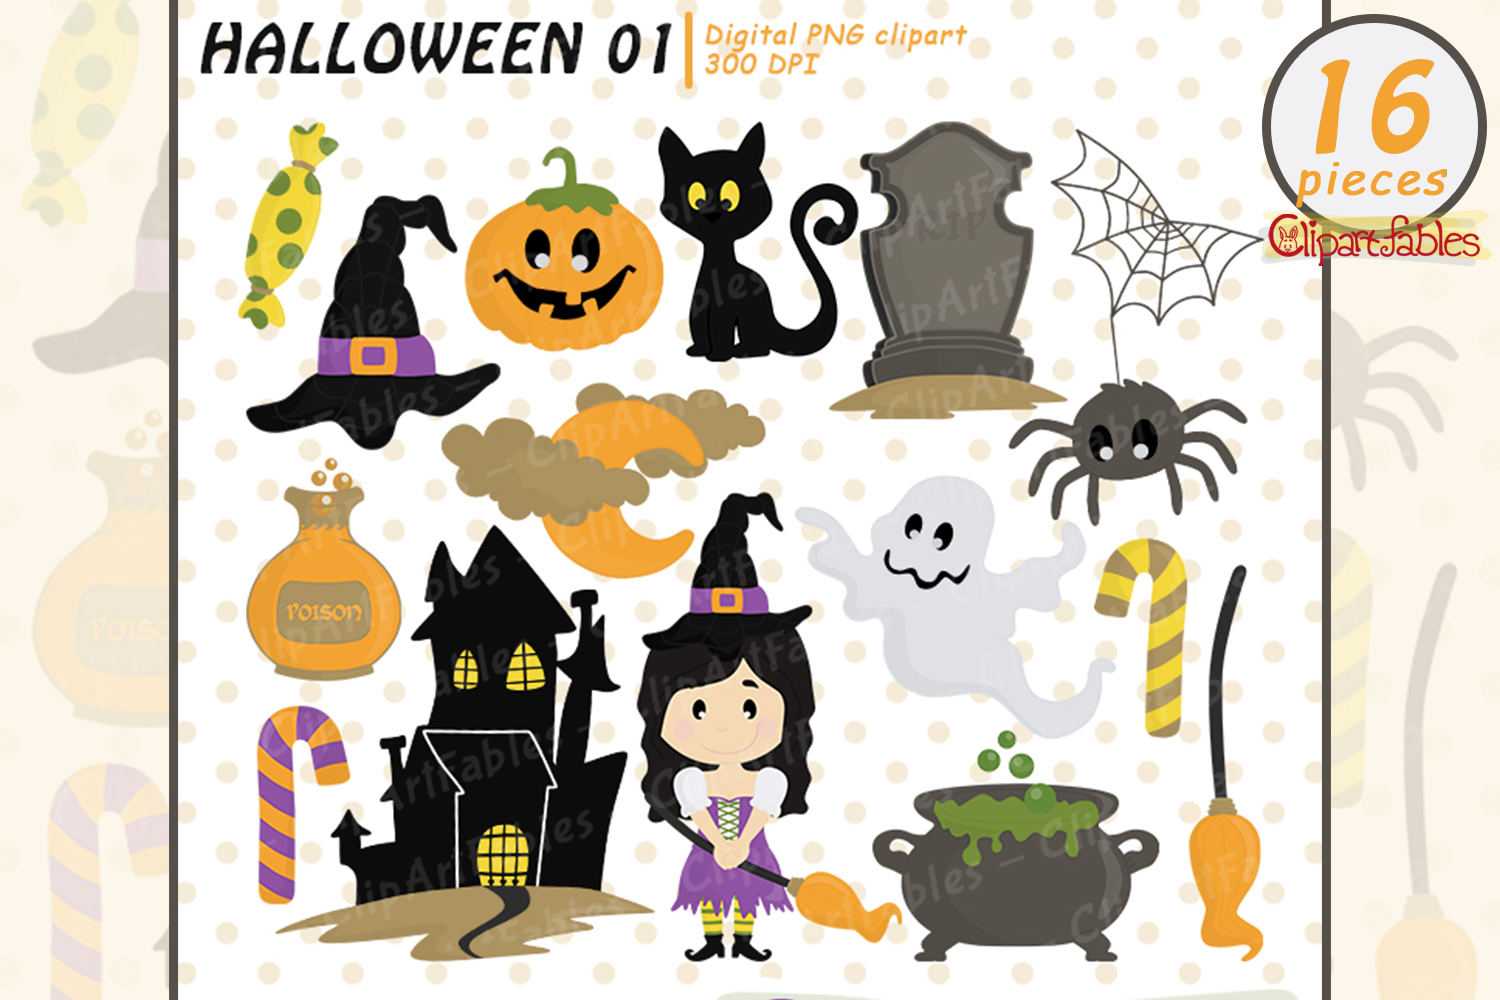 Halloween clipart package, Trick or Treat, Cute spooky art example image 1